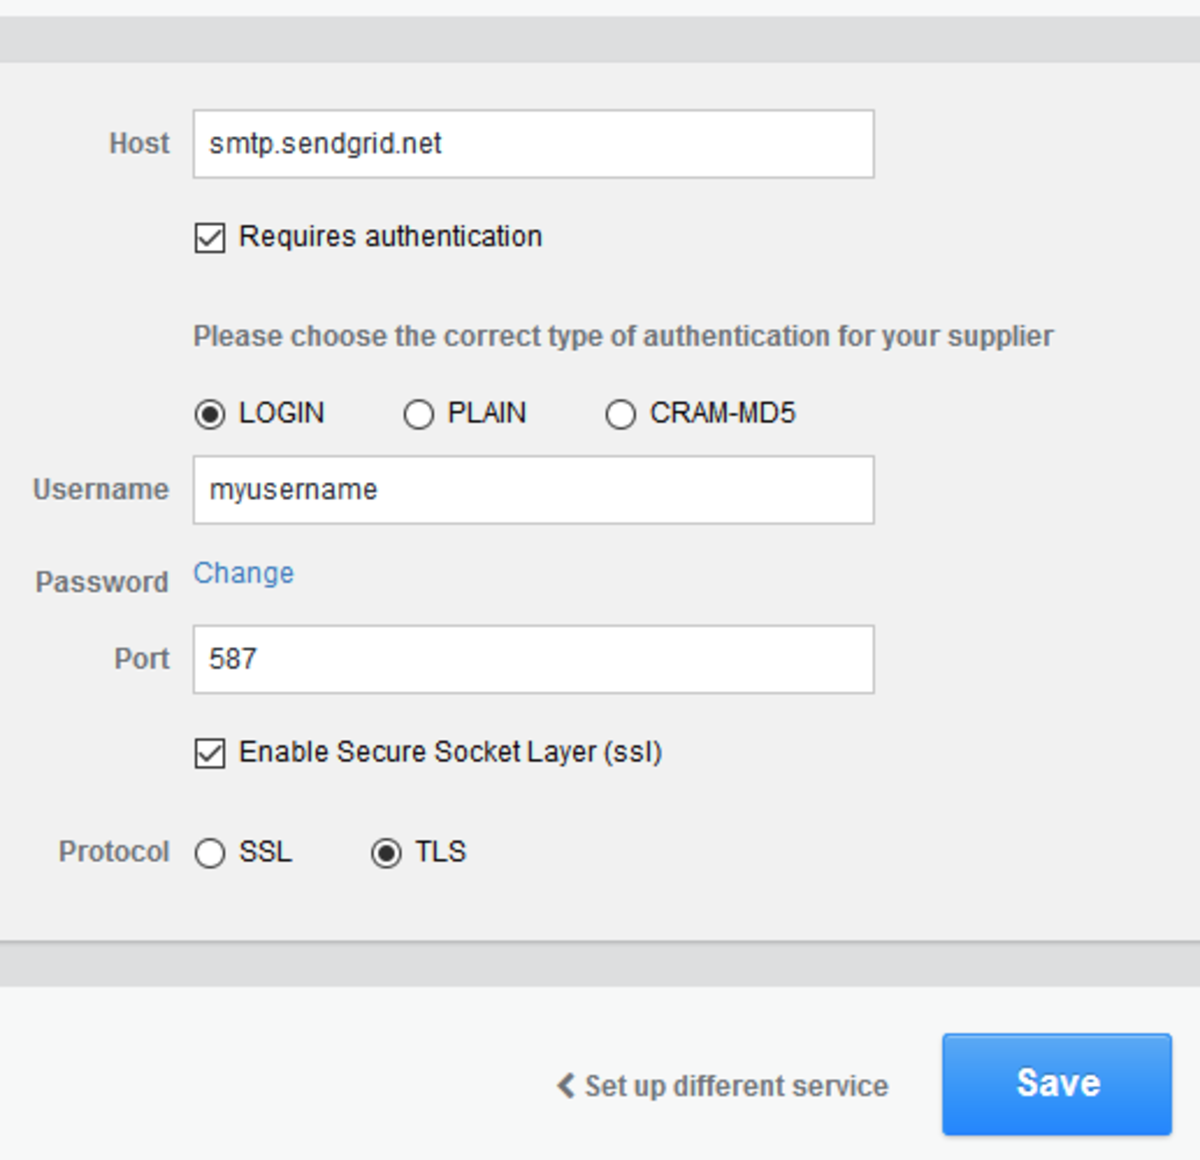 How to set up Cornerstone for sending of email through sendgrid